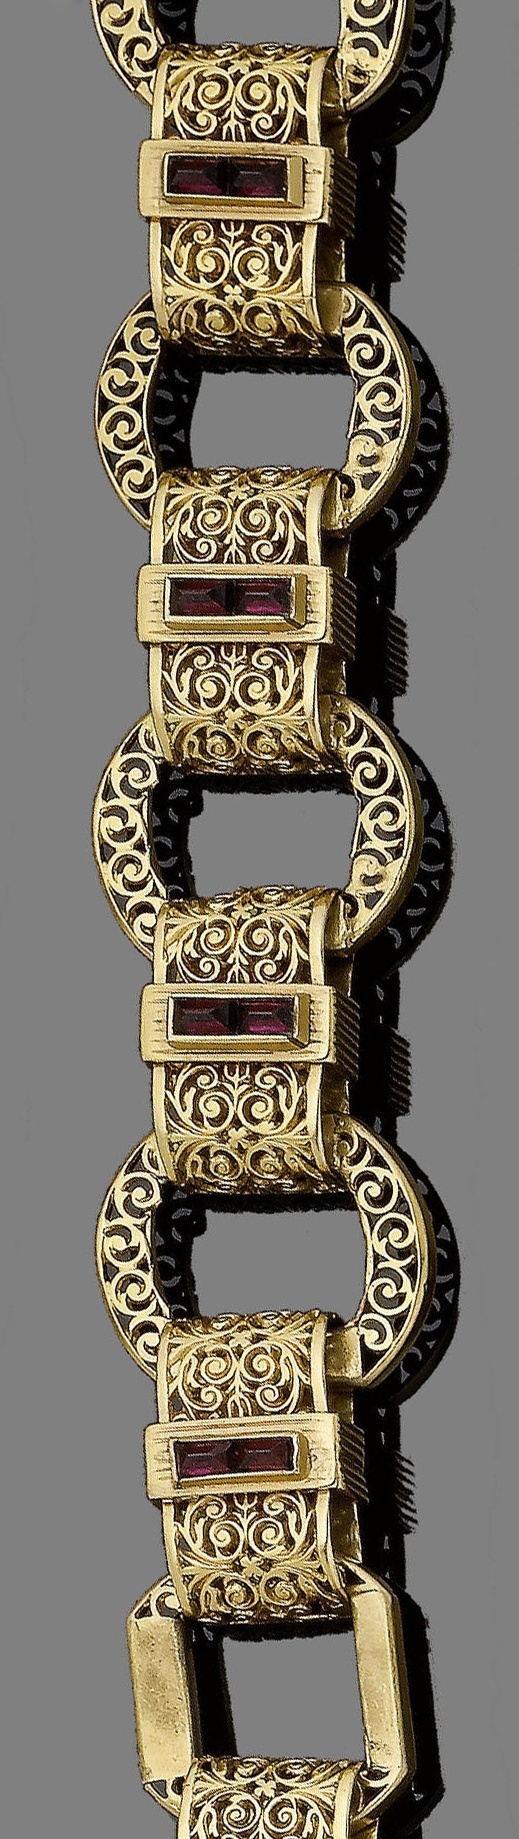 A late 19th century gold and garnet fancy-link bracelet.  Designed as a continuous row of pierced discs, connected by similarly engraved rectangular links of foliate design, centrally-set with two pyramidal-shaped garnets, French assay marks, lengths 17.0cm